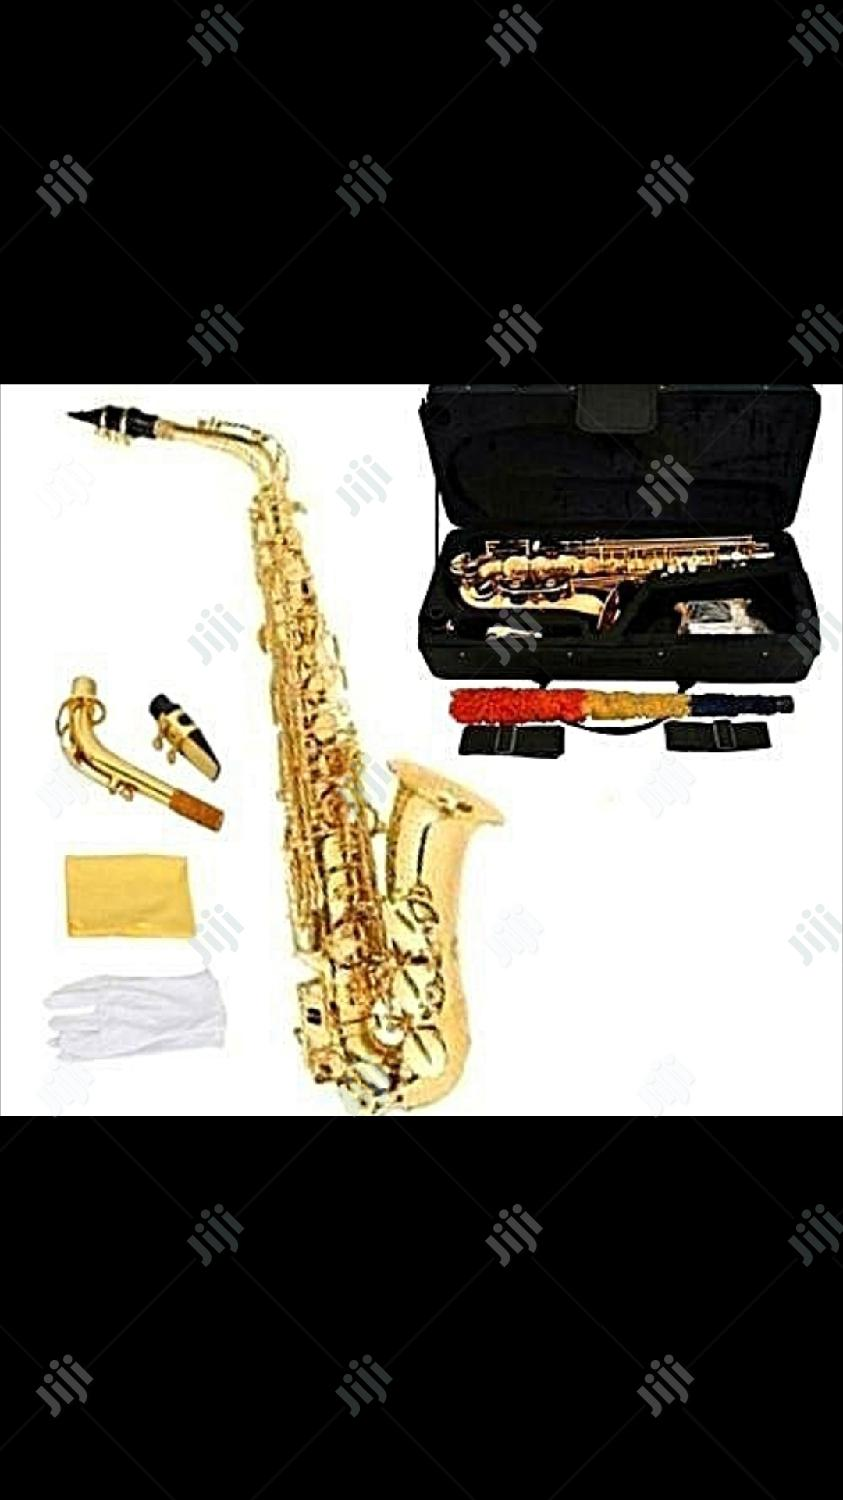 Archive: Yamaha Professional Alto Gold Saxophone With Accessories